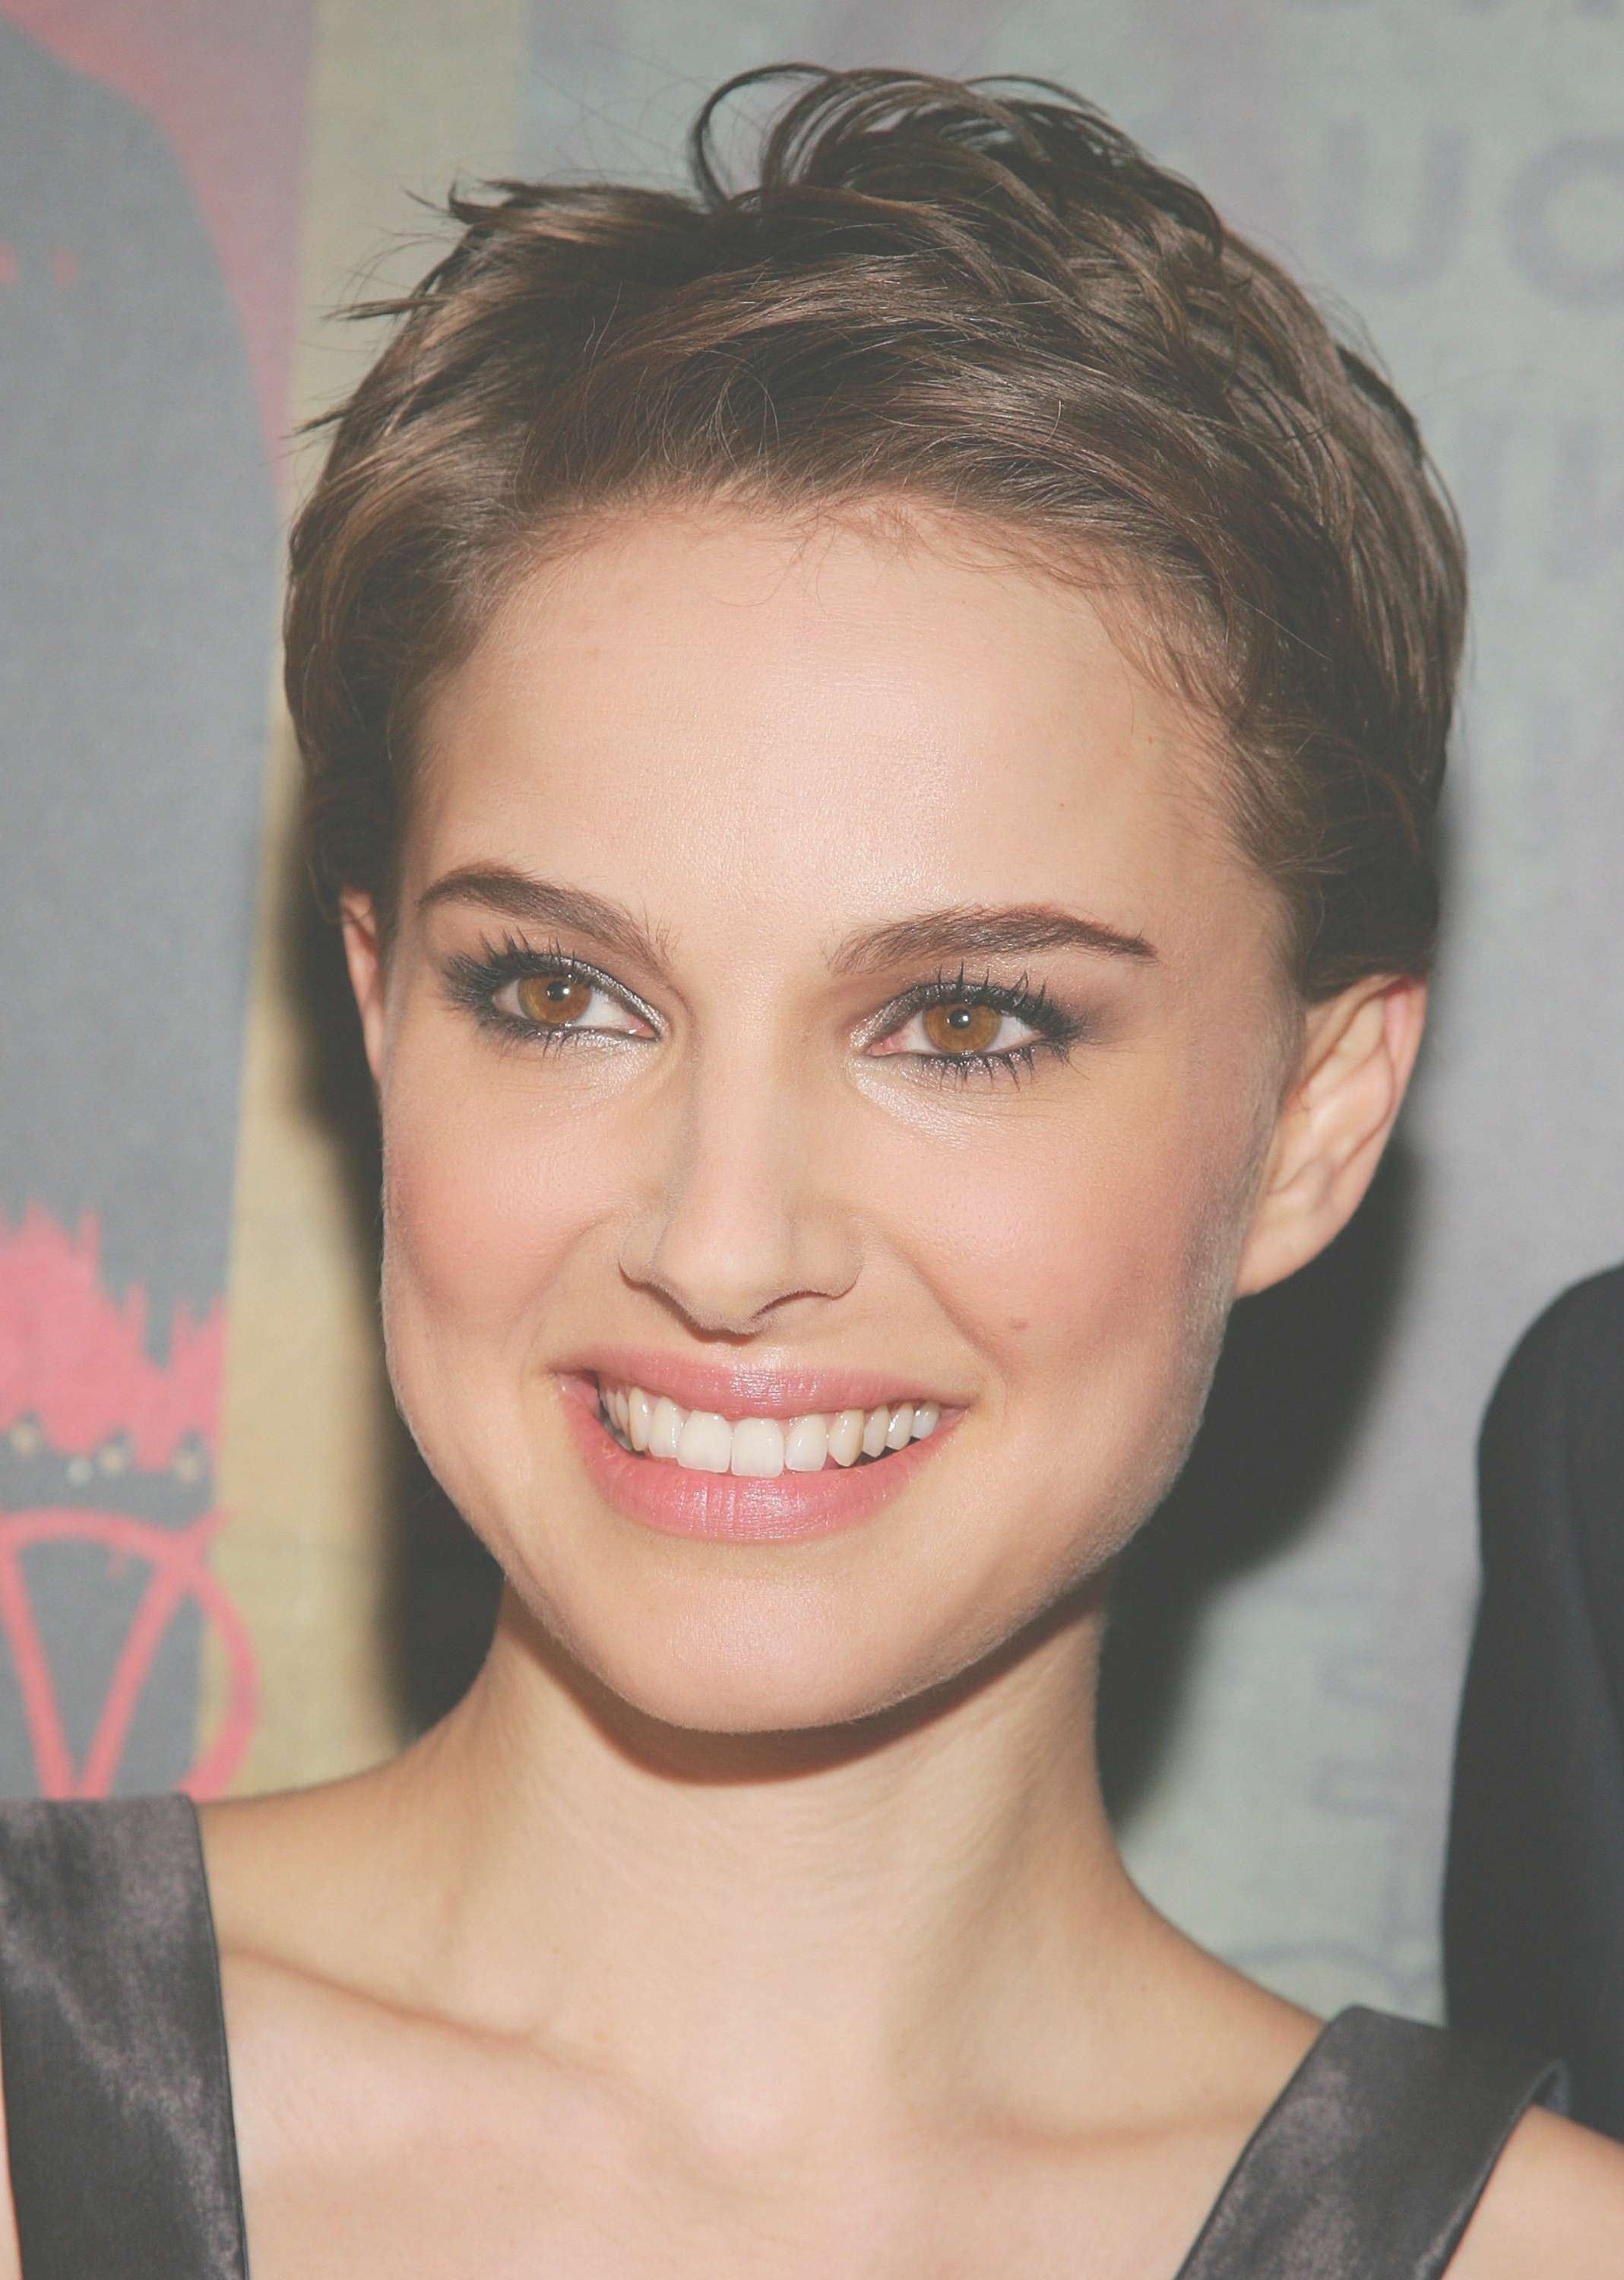 Pixie Cuts For 2018 – 25+ Celebrity Hairstyle Ideas For Women For Recent Actress Pixie Hairstyles (View 11 of 15)